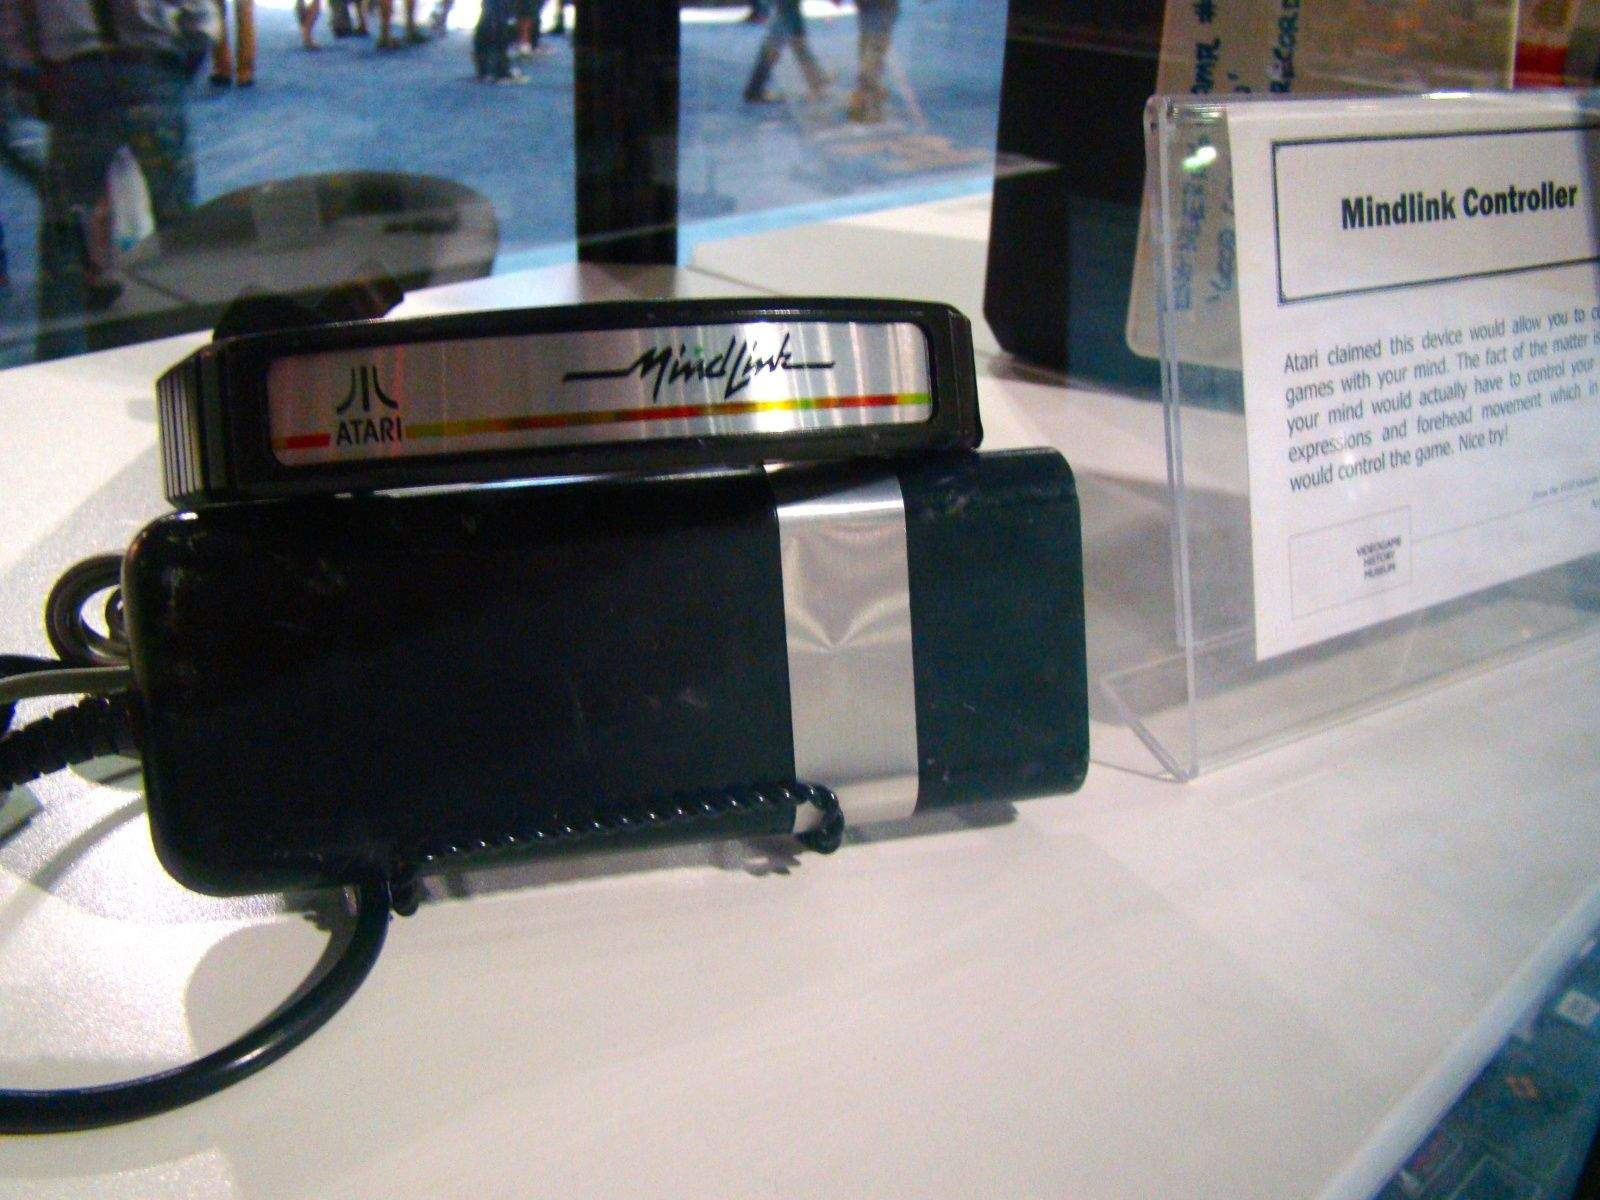 The Atari Mindlink was never released, though it was supposed to come out in 1984 for the Atari 2600. It was developed to read your head muscles (not actually your mind) and move stuff in the games developed for it, Bionic Breakthrough and Mind Maze. The games never even came out, either. Test players got headaches, apparently, moving their eyebrows around to play these uninteresting games.